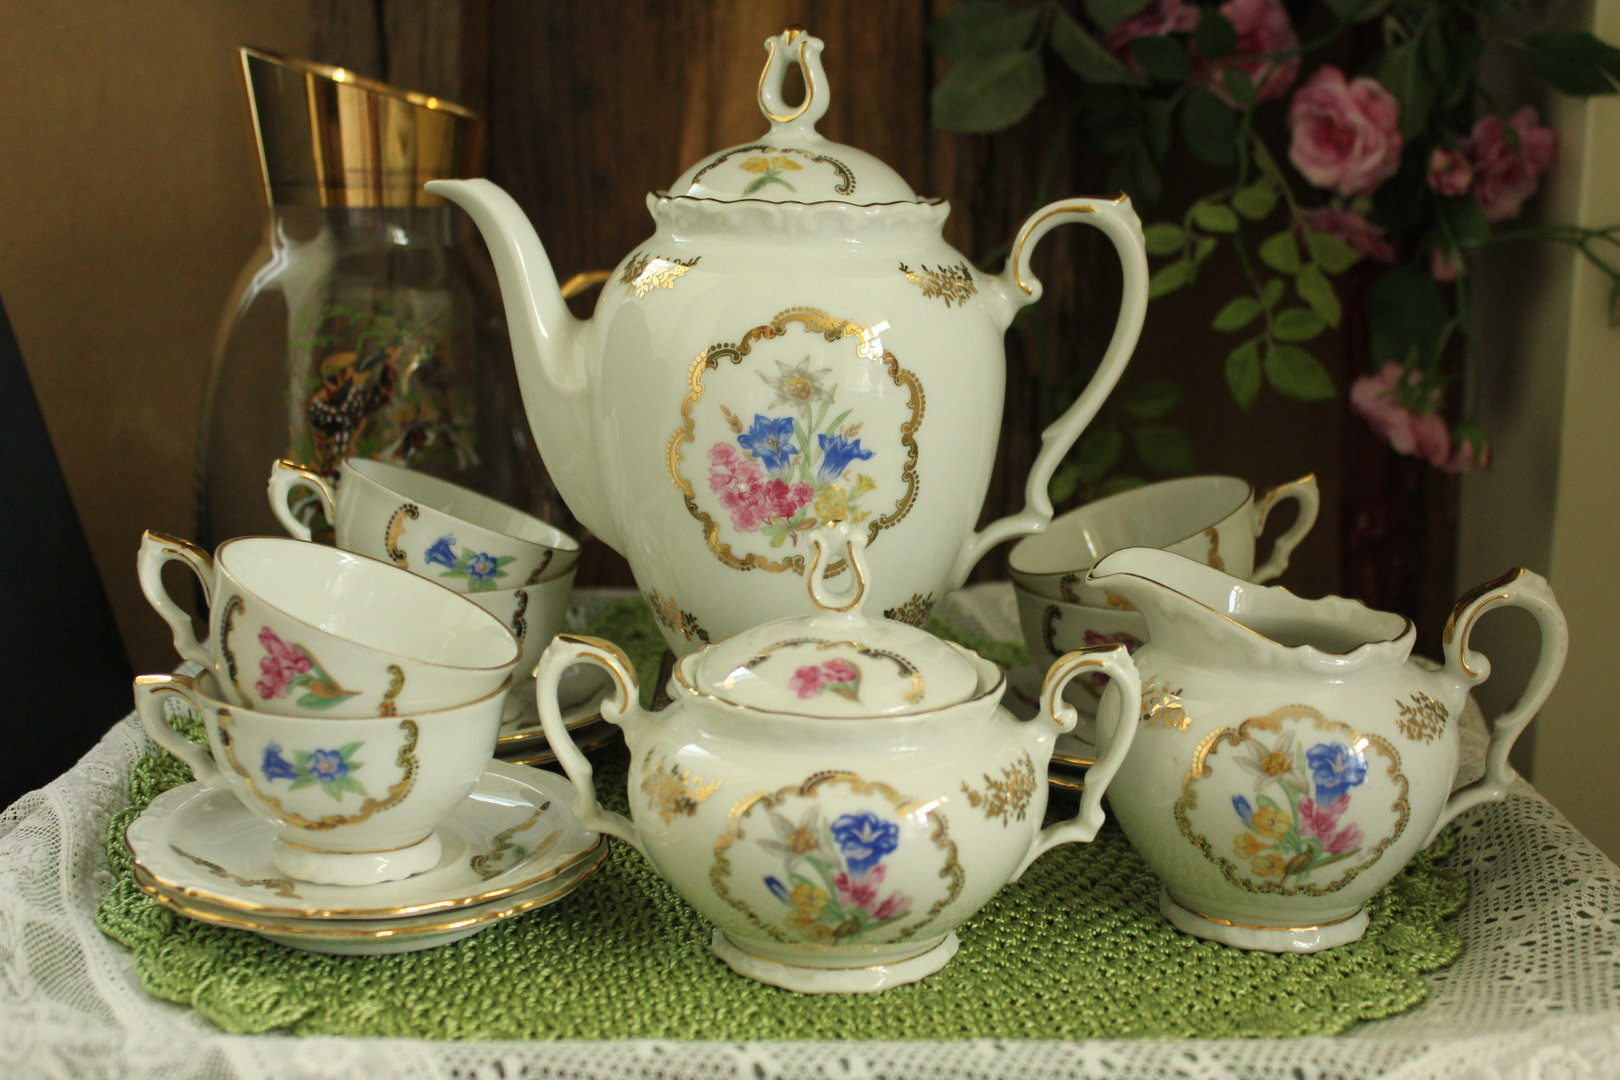 Wit 9 delig servies